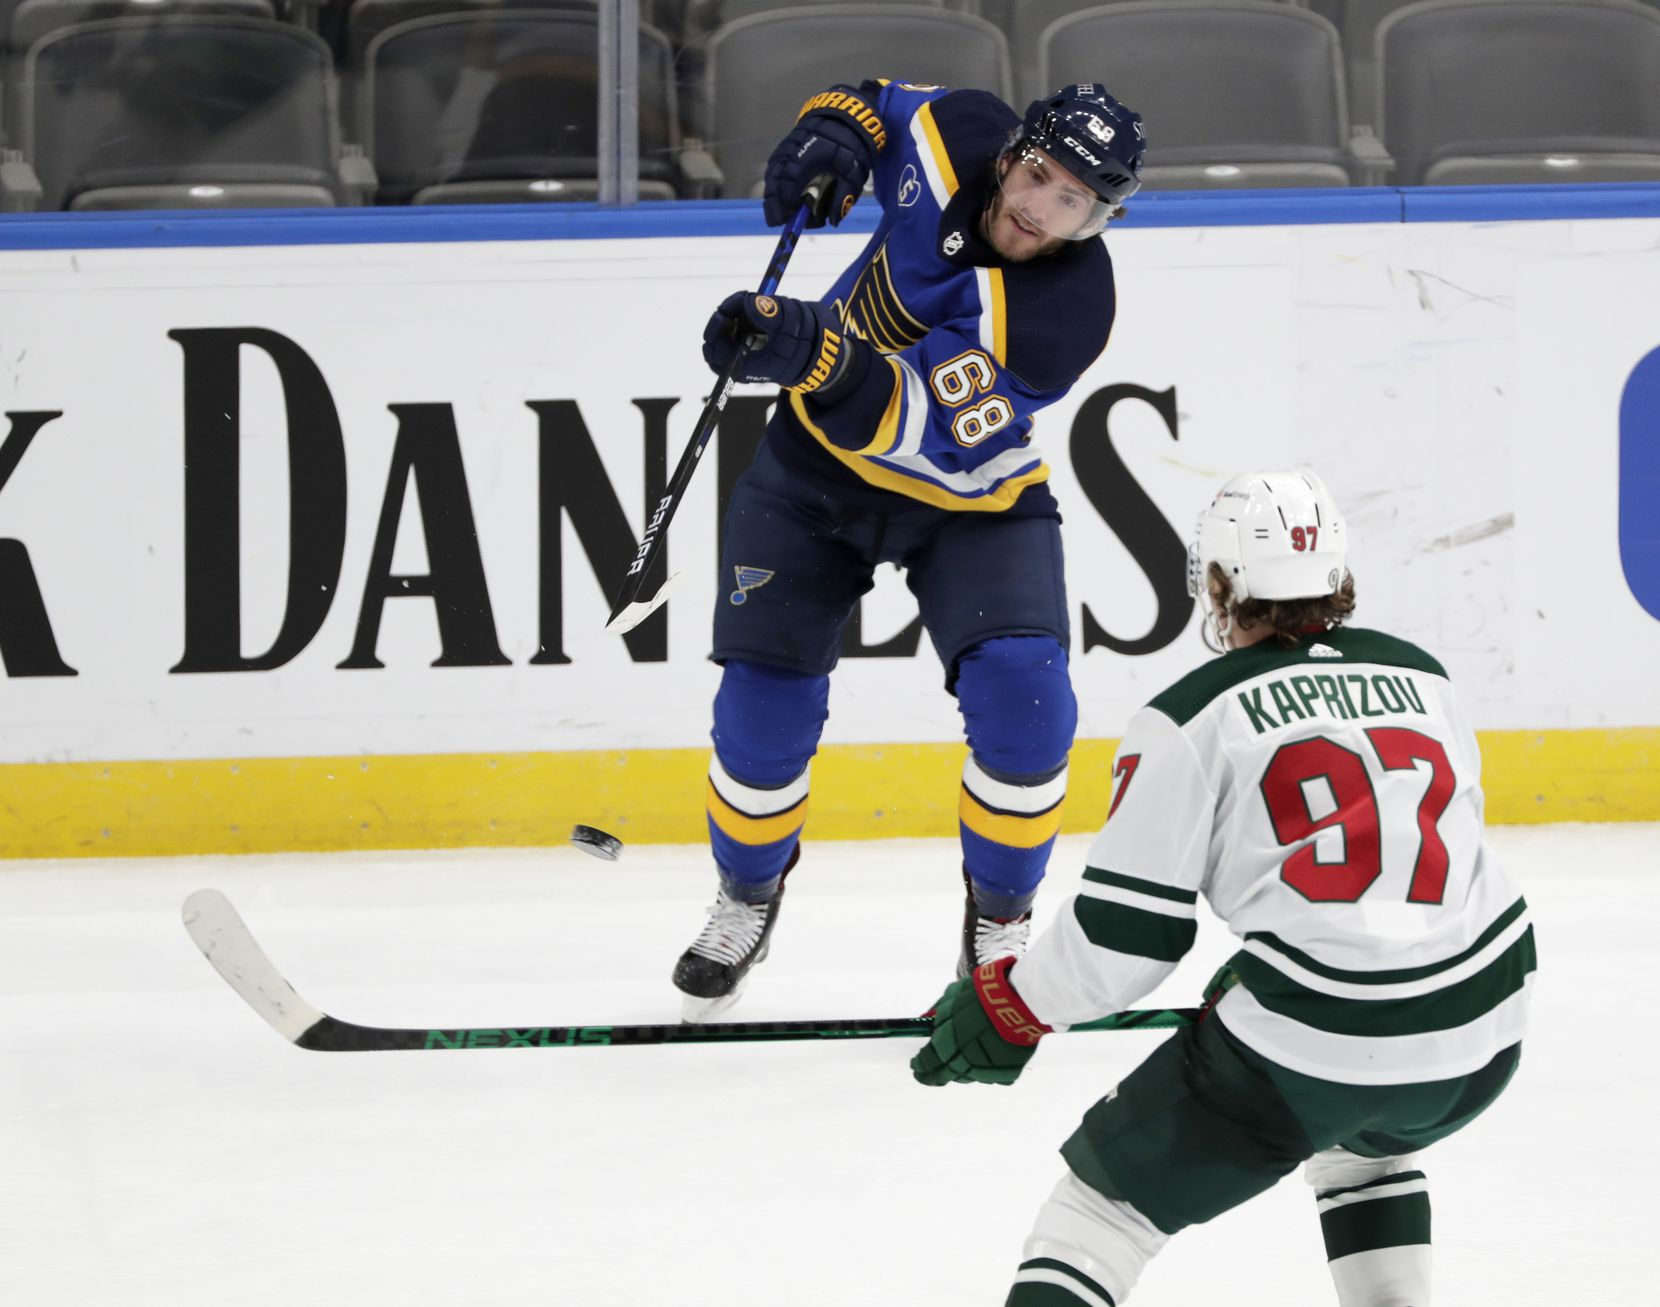 St. Louis Blues' Mike Hoffman (68) flips the puck past Minnesota Wild's Kirill Kaprizov (97) in the third period of an NHL hockey game, Wednesday, May 12, 2021 in St. Louis. The Blues beat the Wild 4-0.